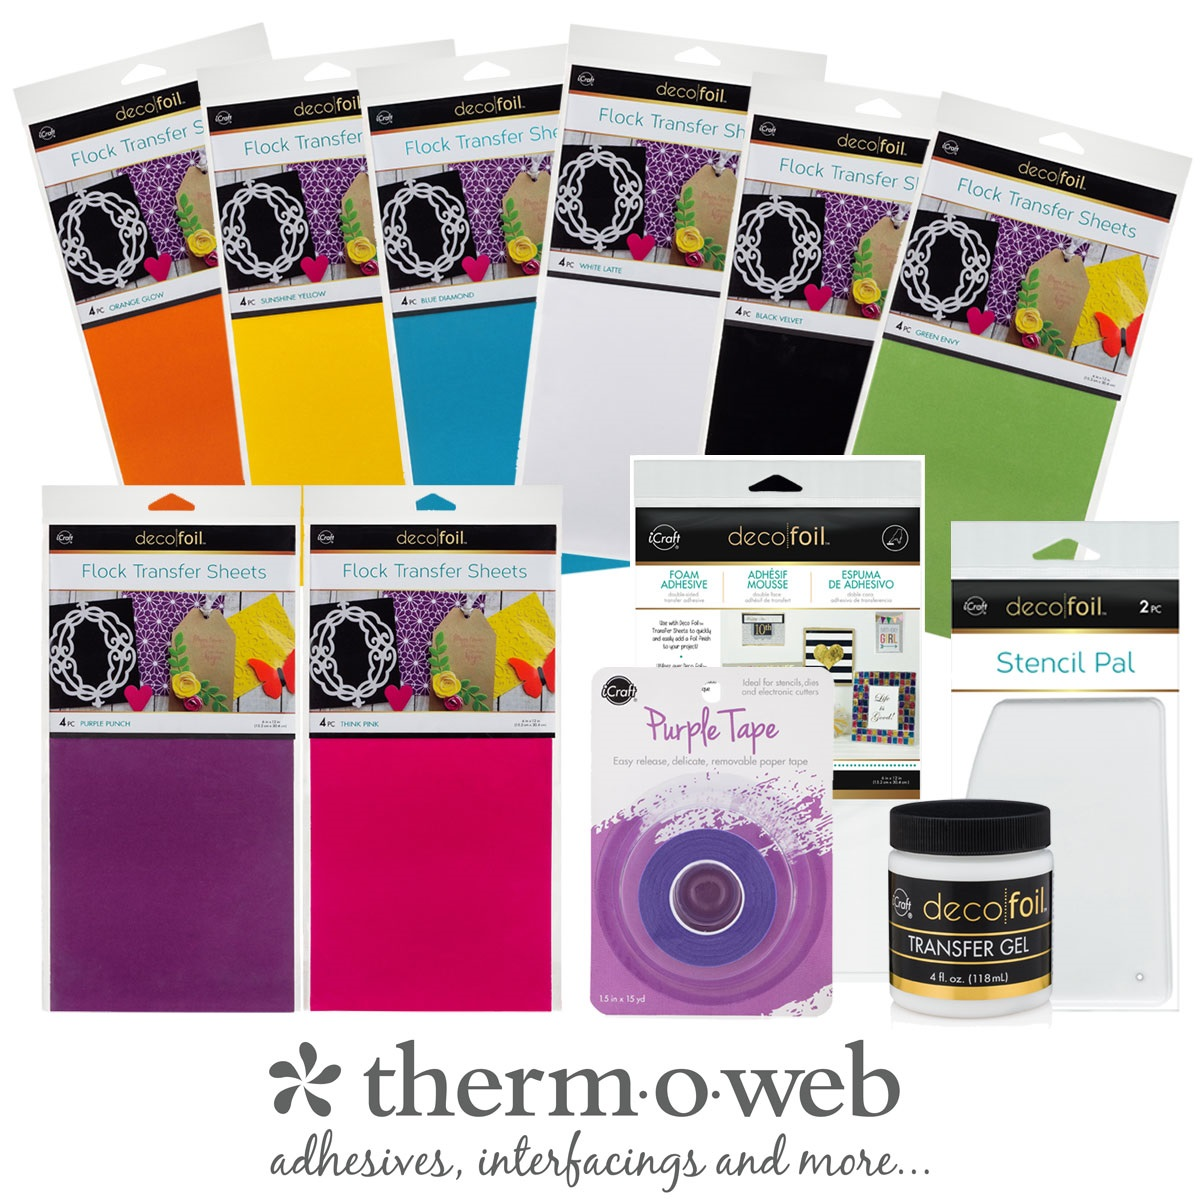 Therm O Web Giveaway Prize Package including Flock Transfer Sheets